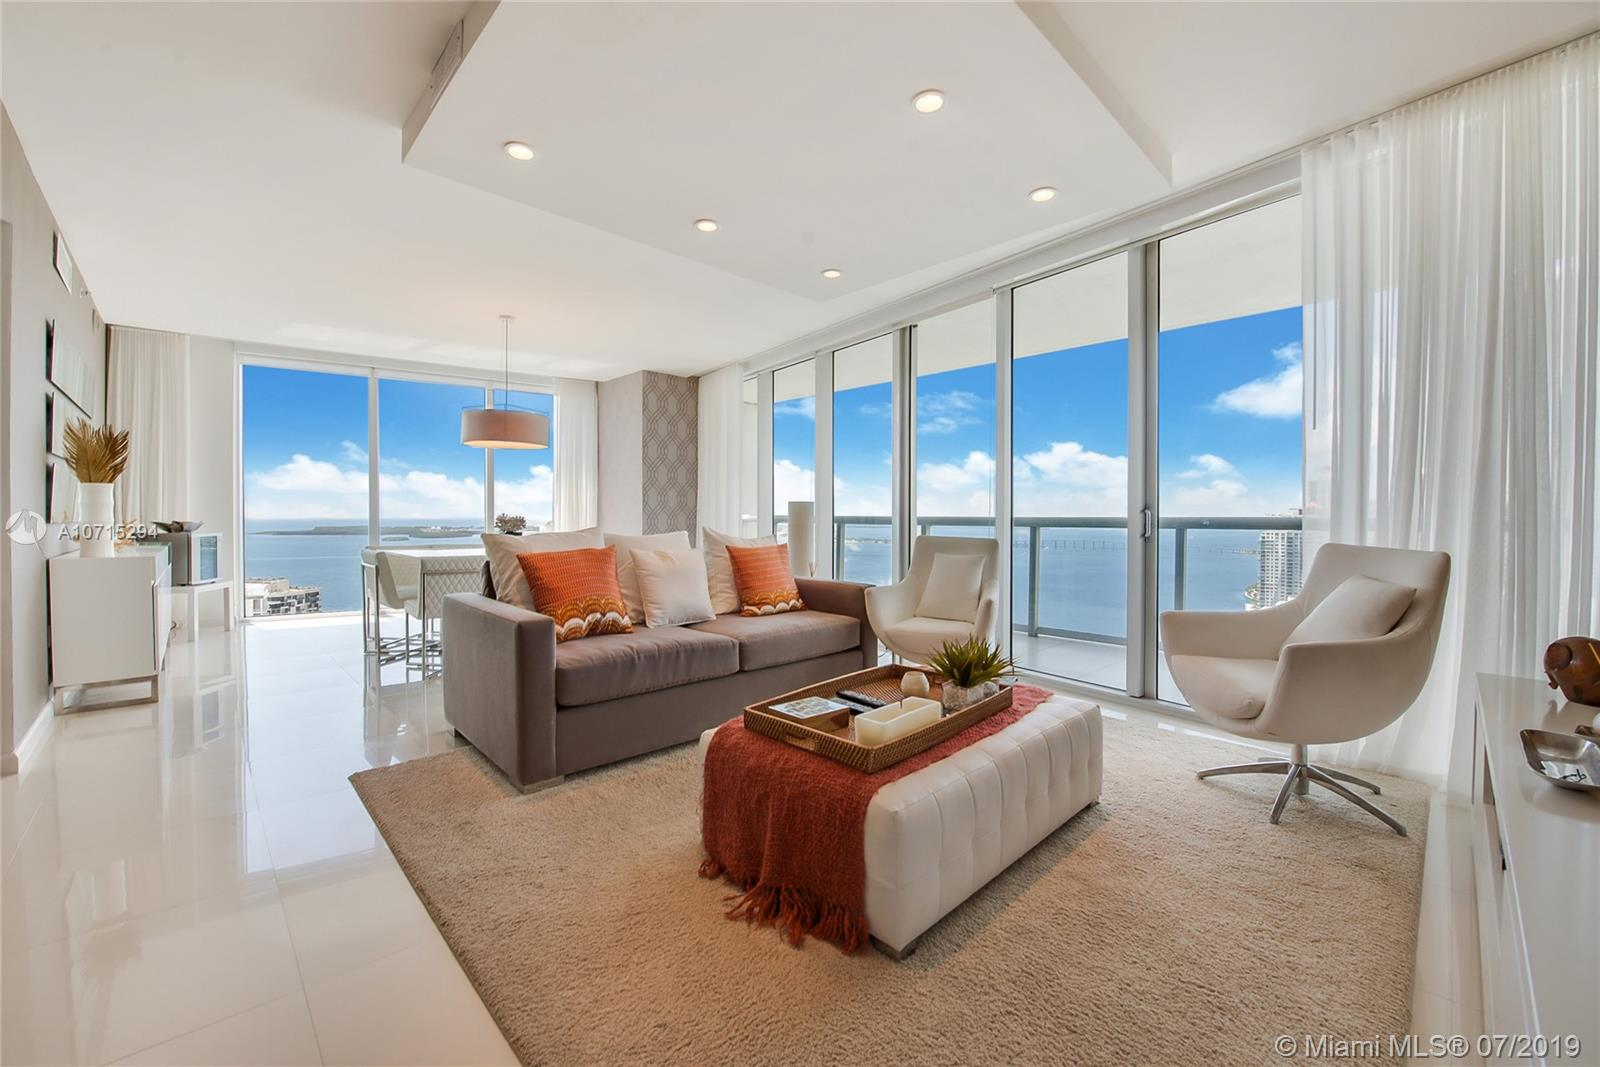 Icon Brickell 2 #3301 - 495 Brickell Ave #3301, Miami, FL 33131